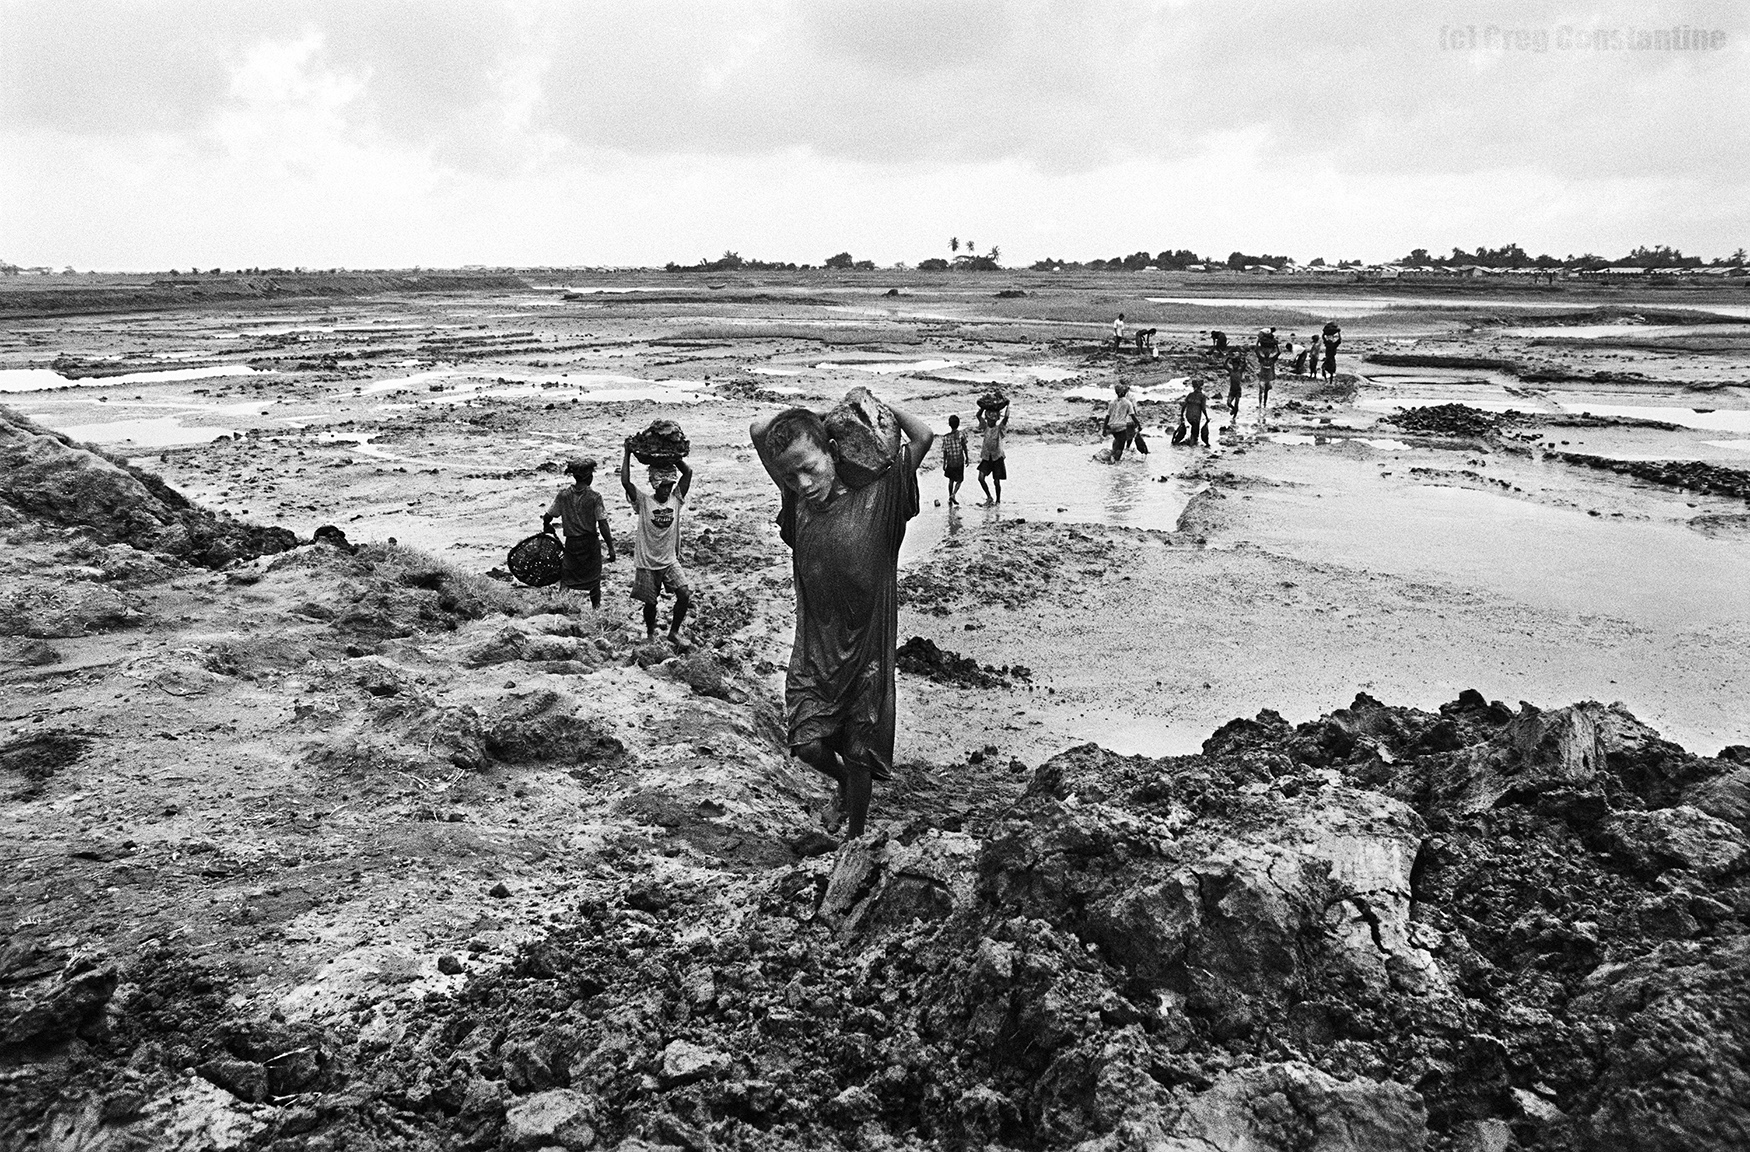 Rohingya feel a generation of children will not receive an education. Seven-year-old Nur hauls mud at a worksite near one of the IDP  [internally displaced person]   camps.